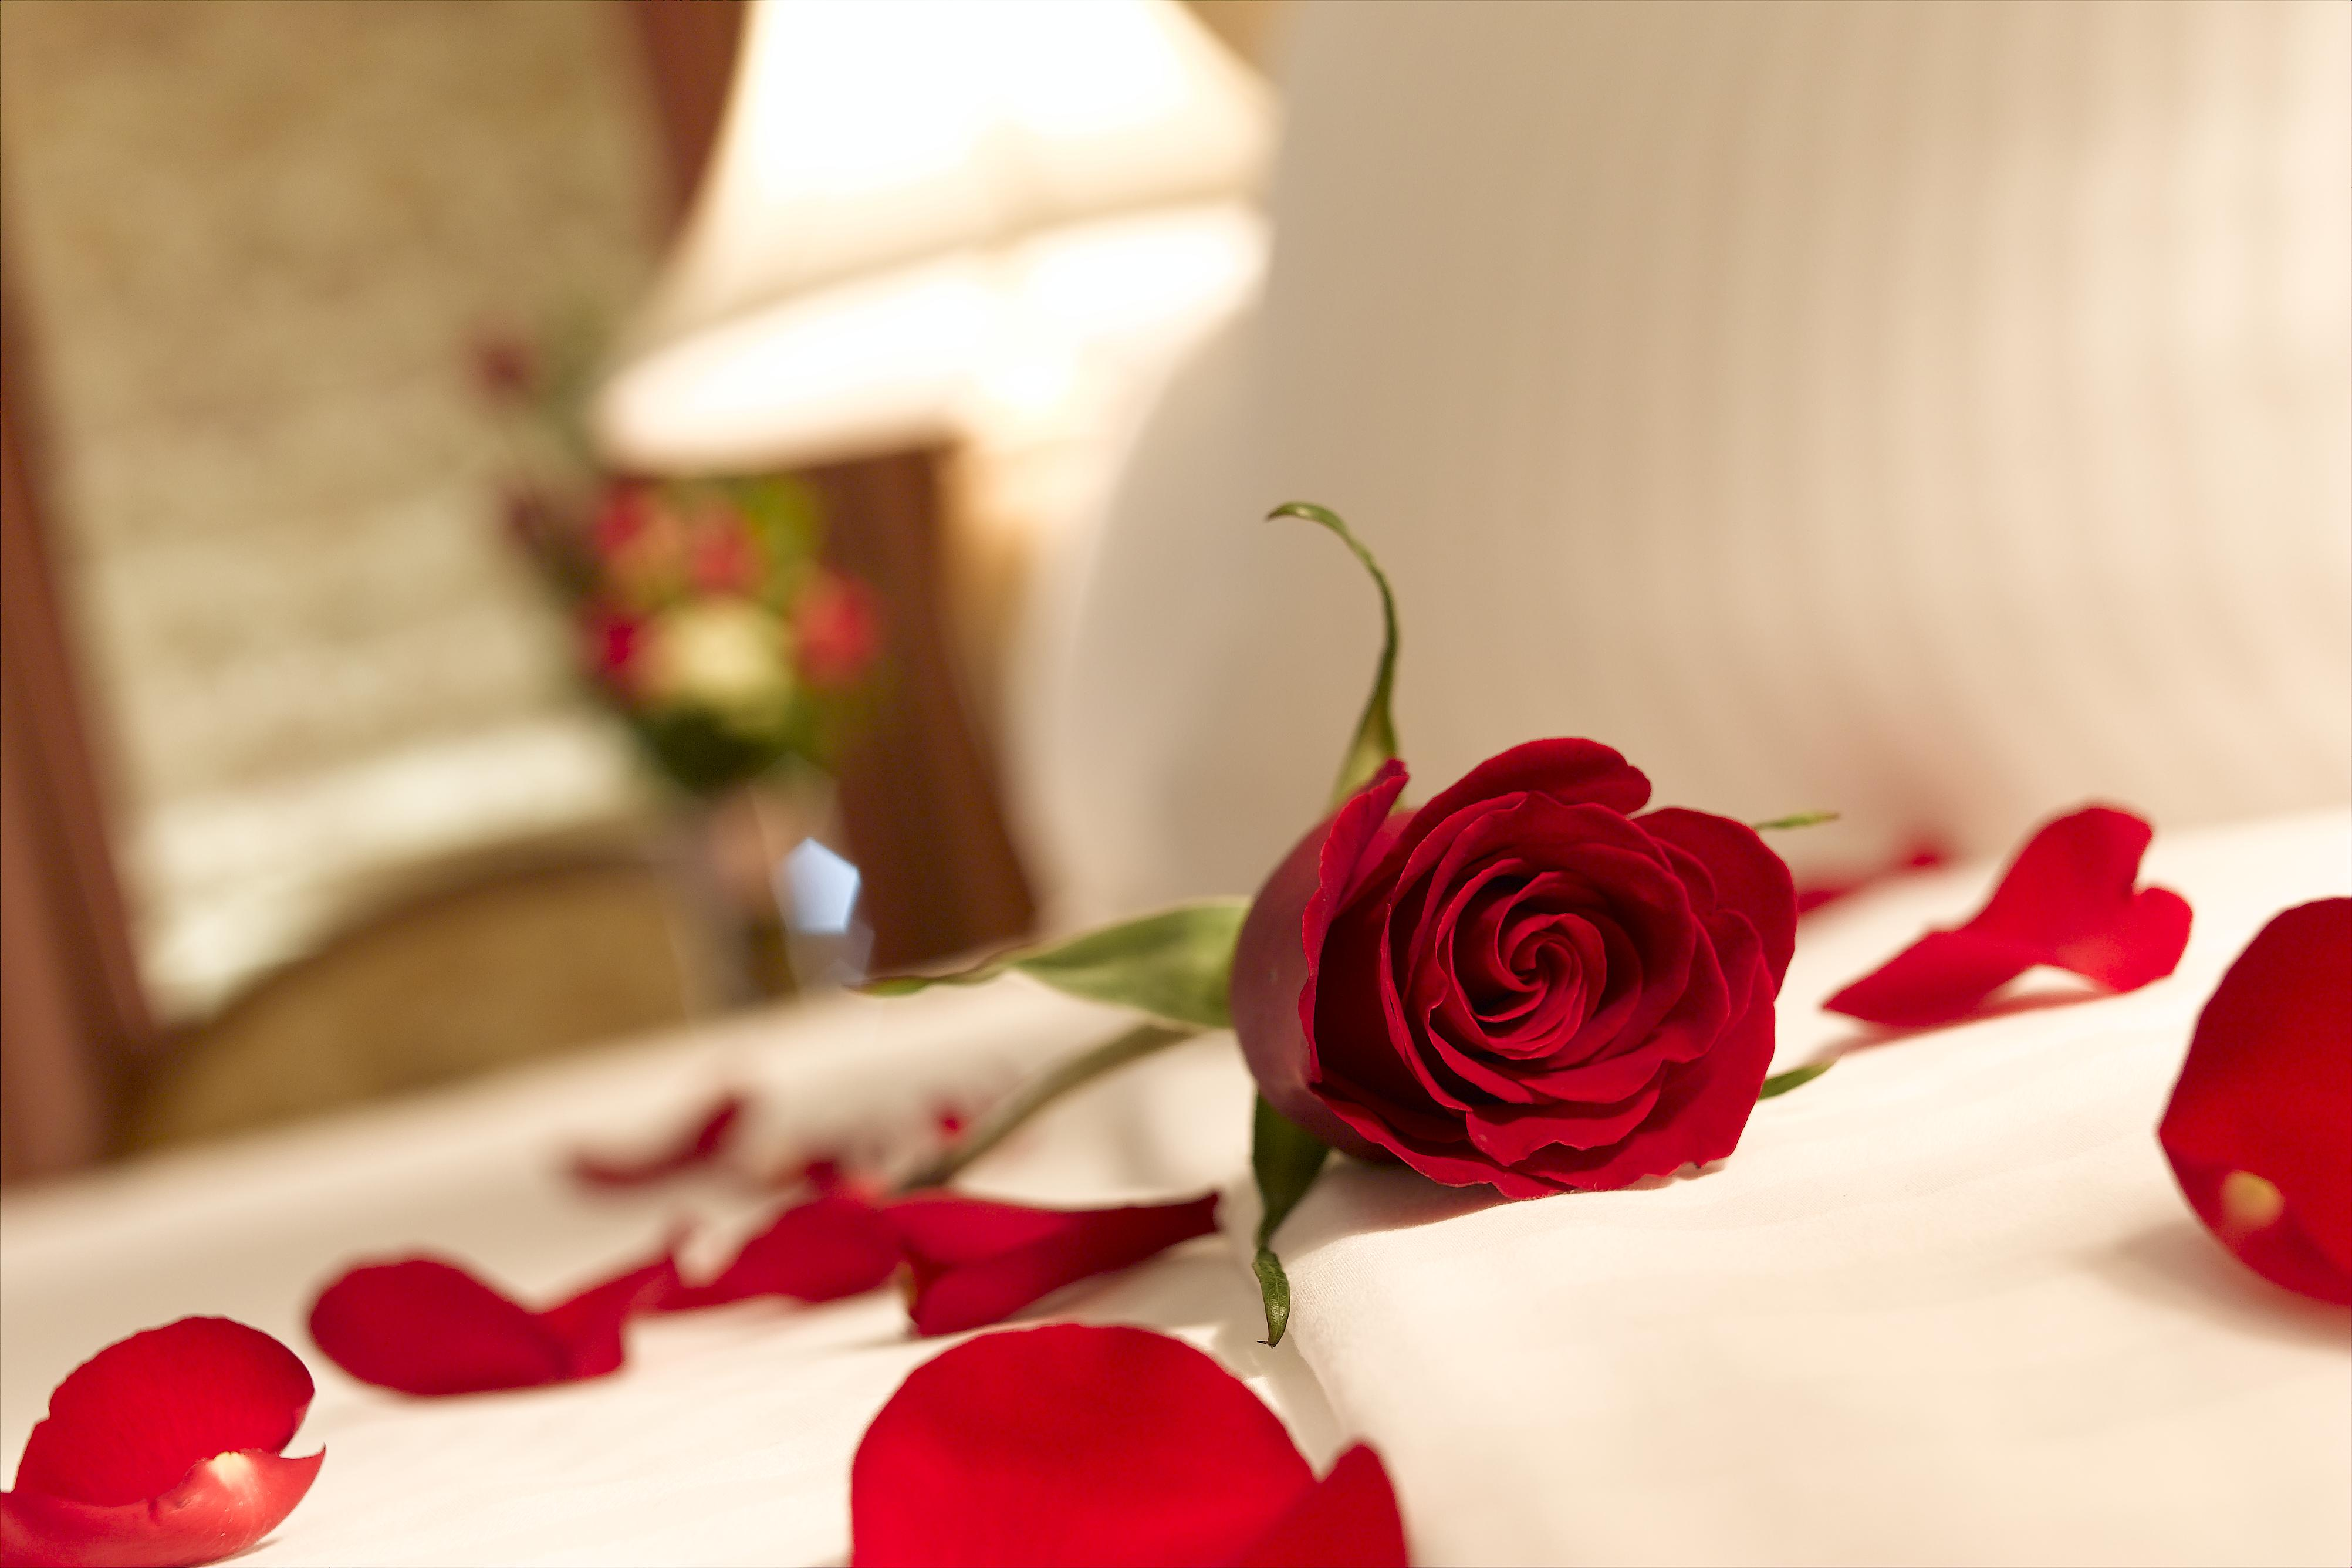 Romantic Bed With Roses